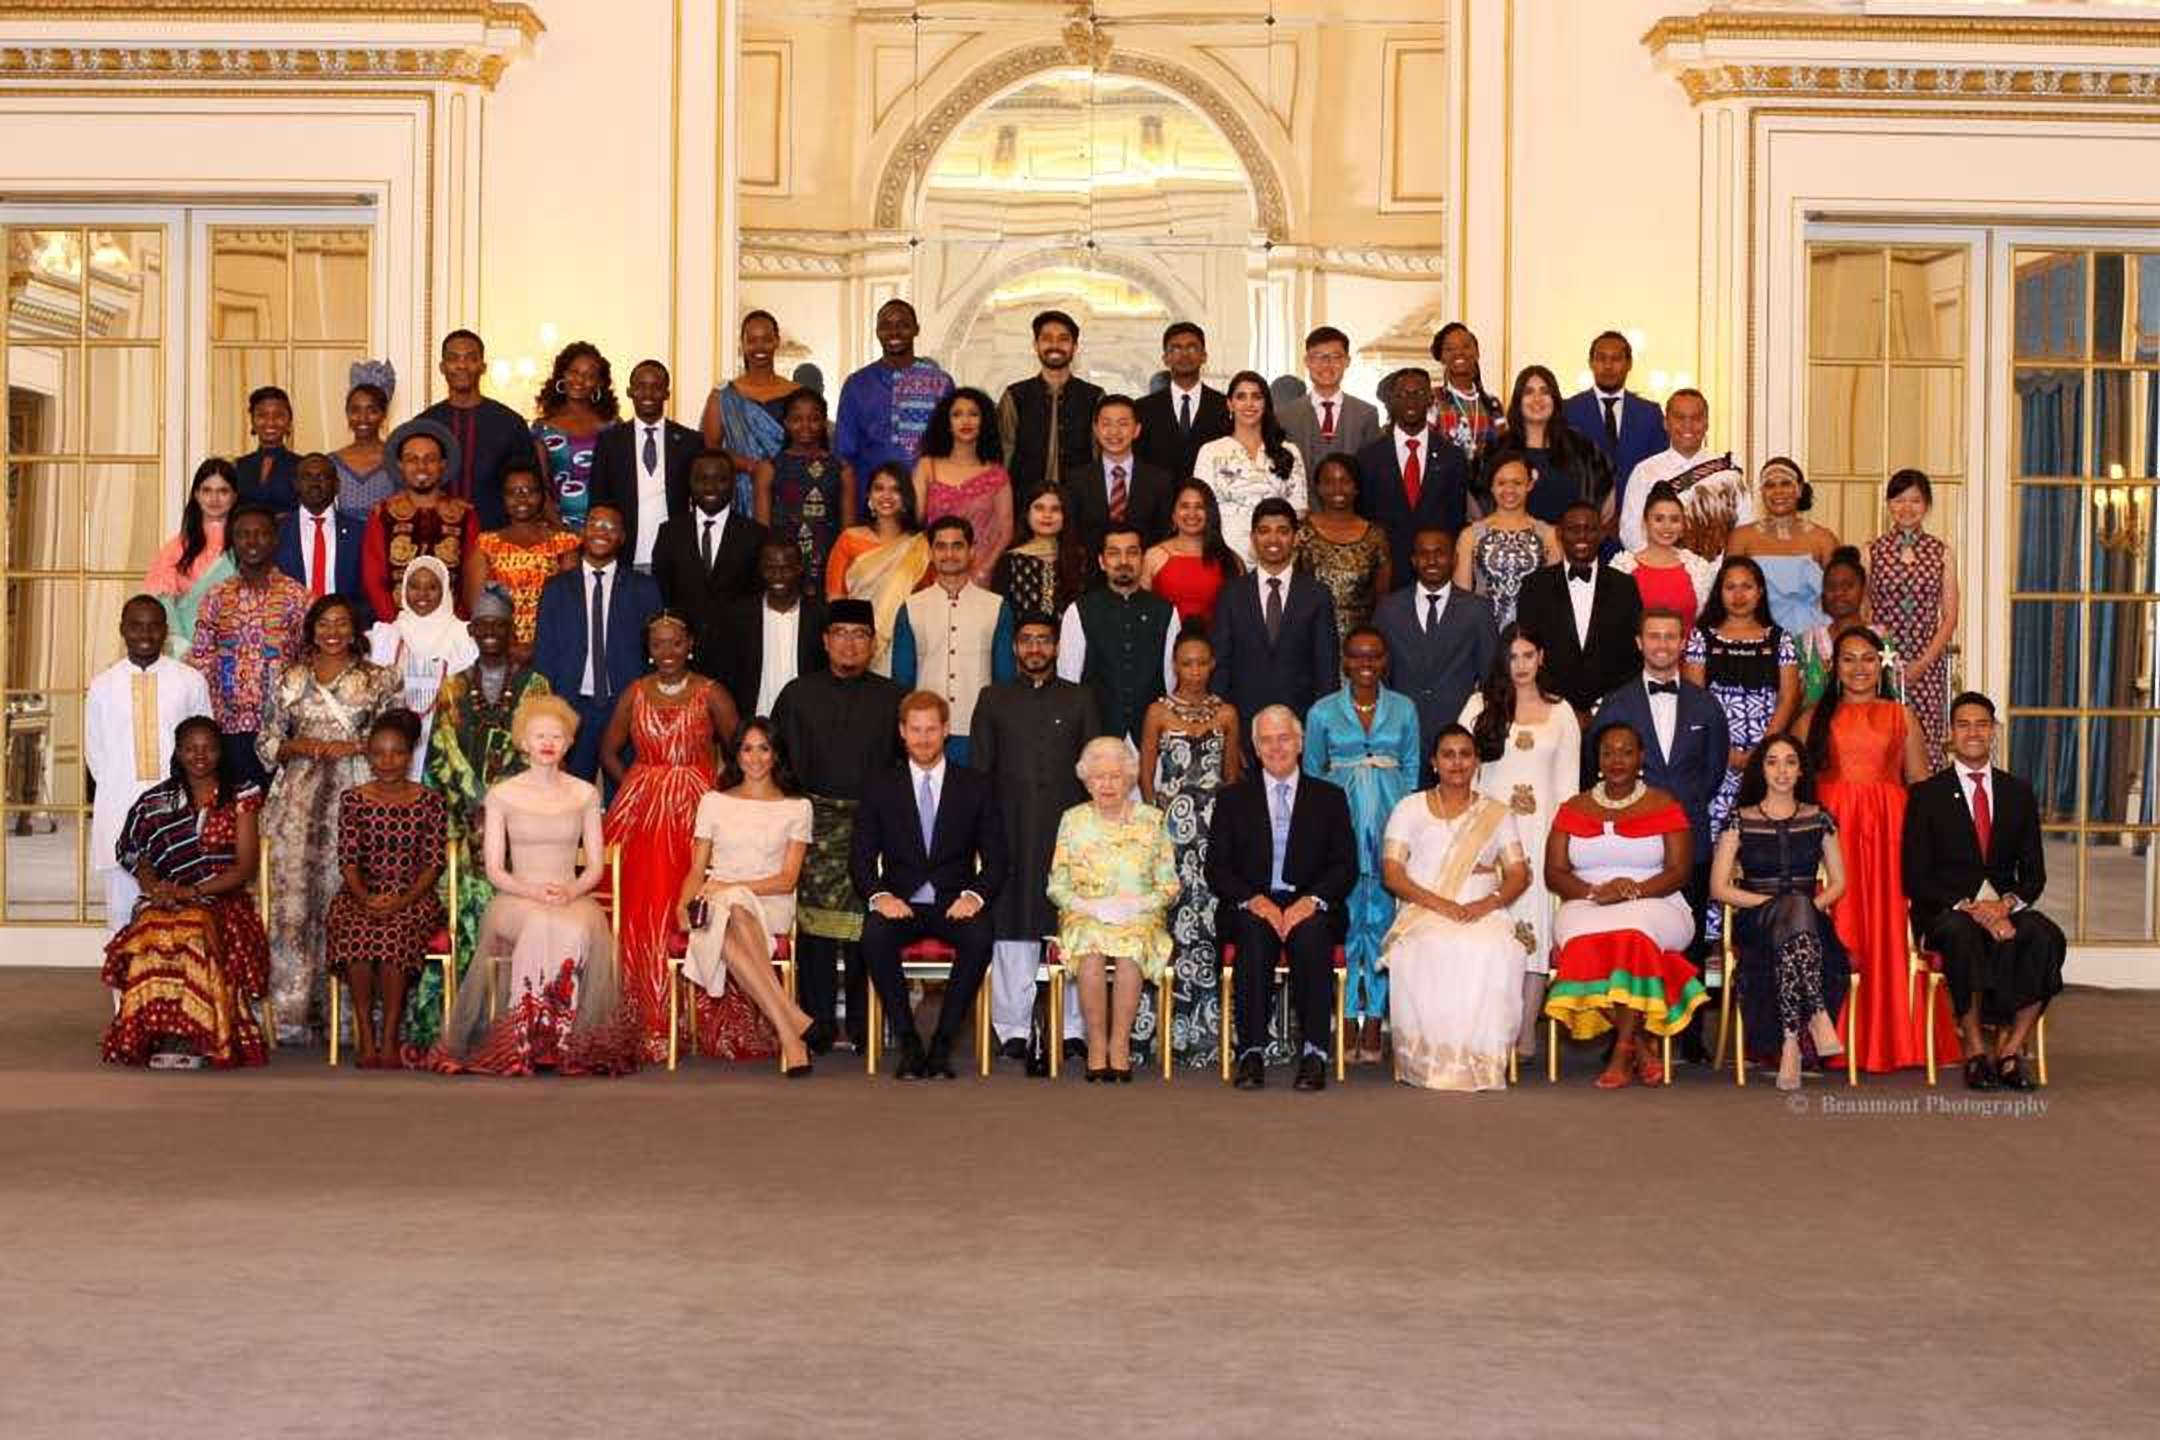 The young leaders are hosted by Queen Elizabeth at the Buckingham Palace in London, UK (FILE PHOTO)